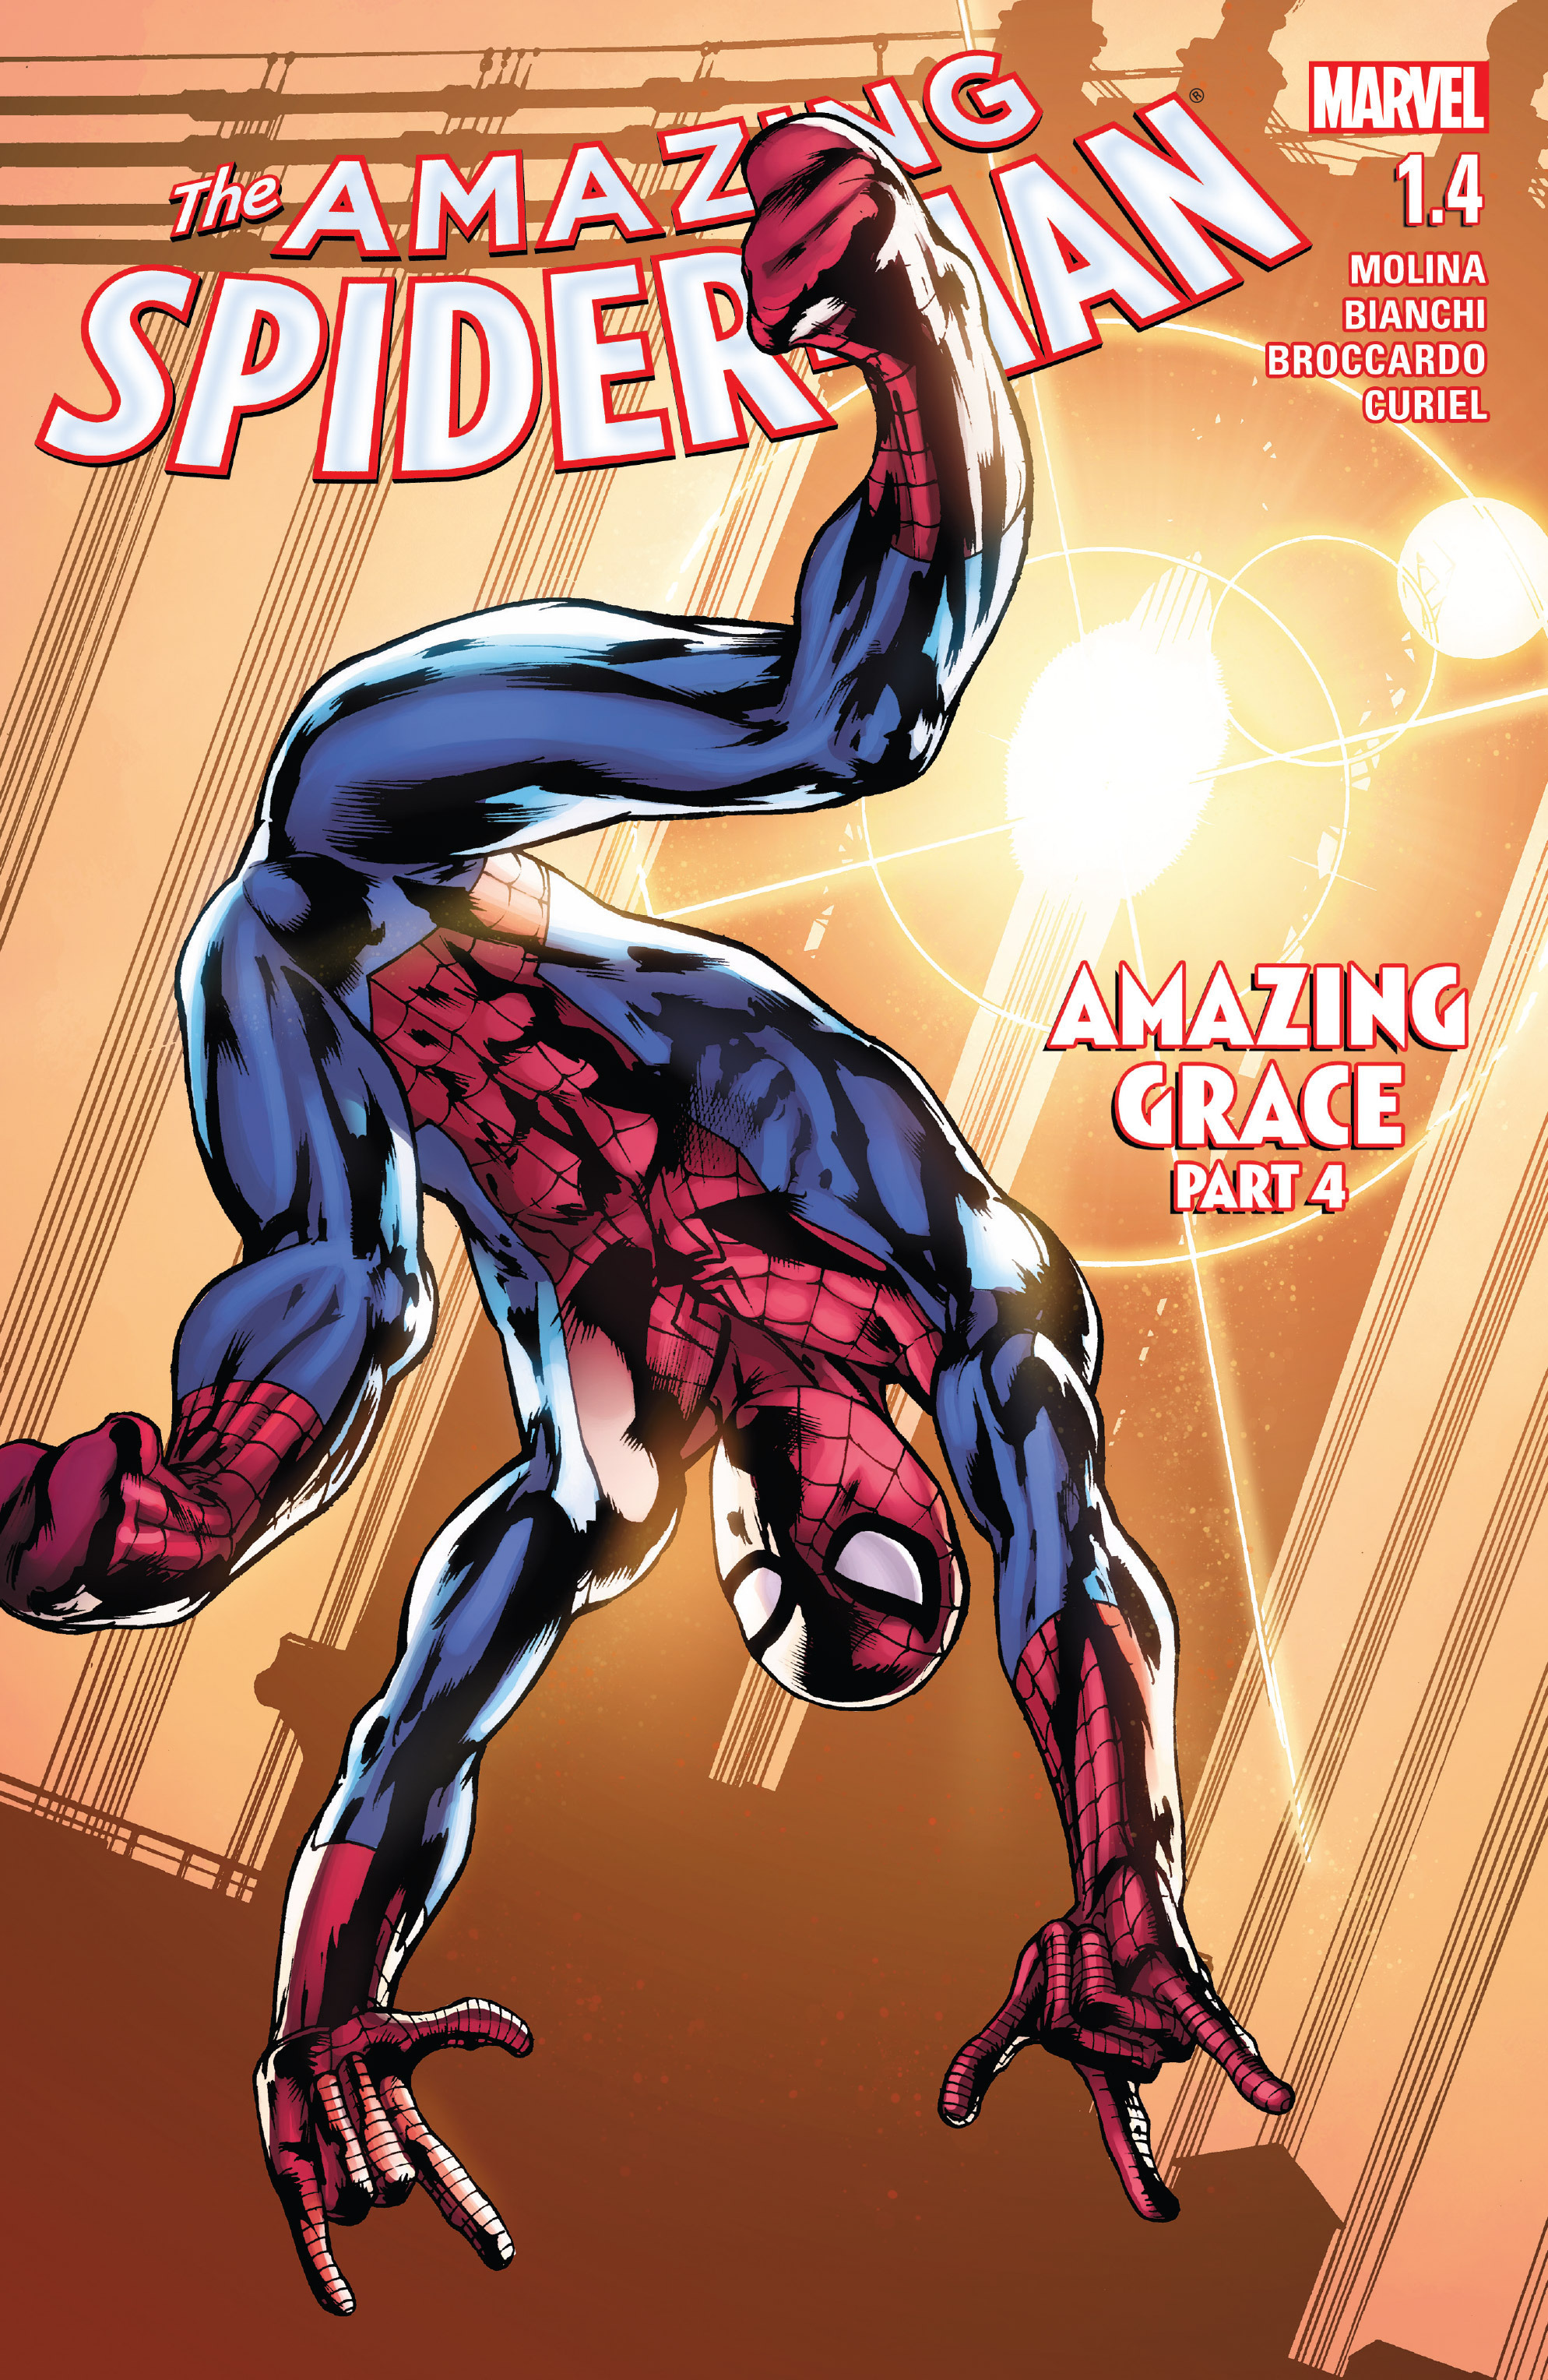 The Amazing Spider-Man (2015) 1.4 Page 1